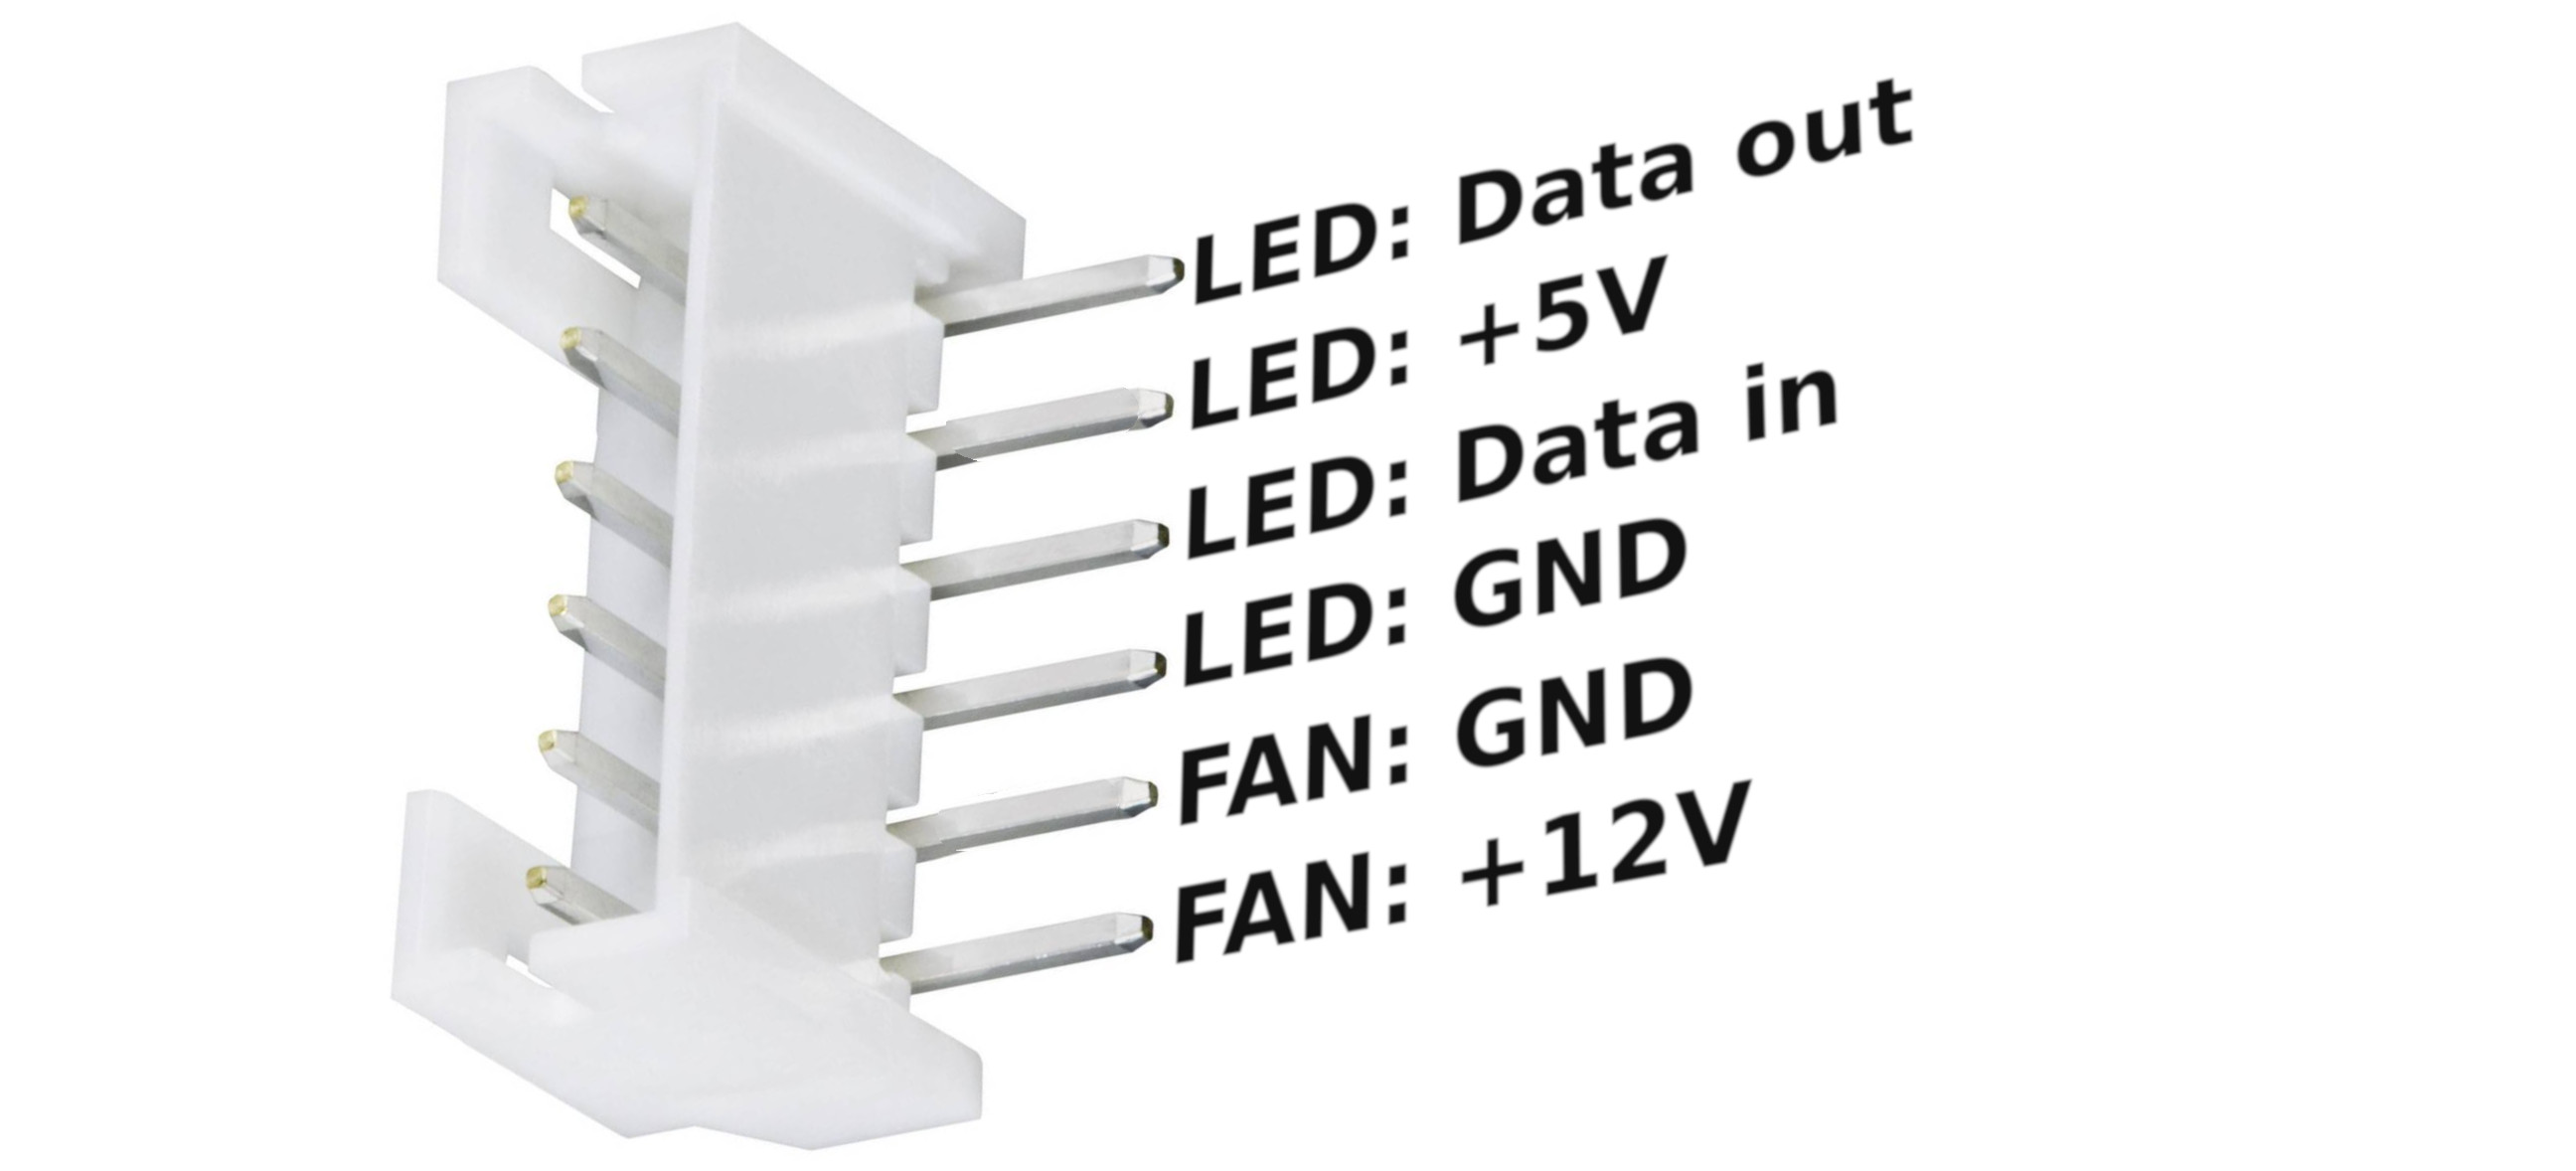 fan connector pinout